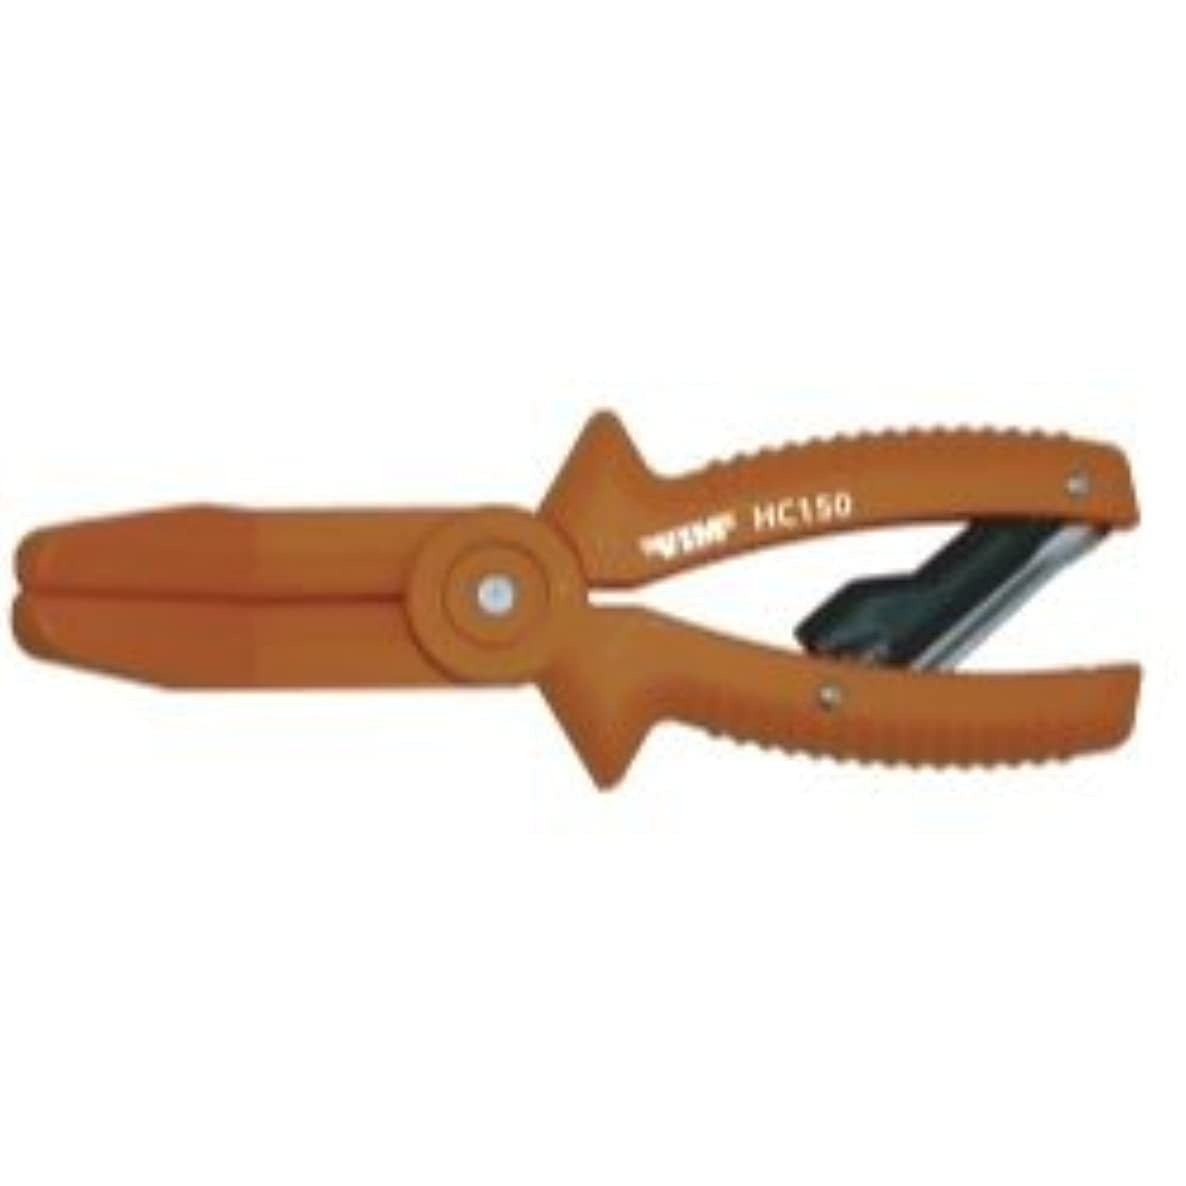 Hose Clamp Pliers, Auto Lock and Quick Release Tools Equipment Hand Tools